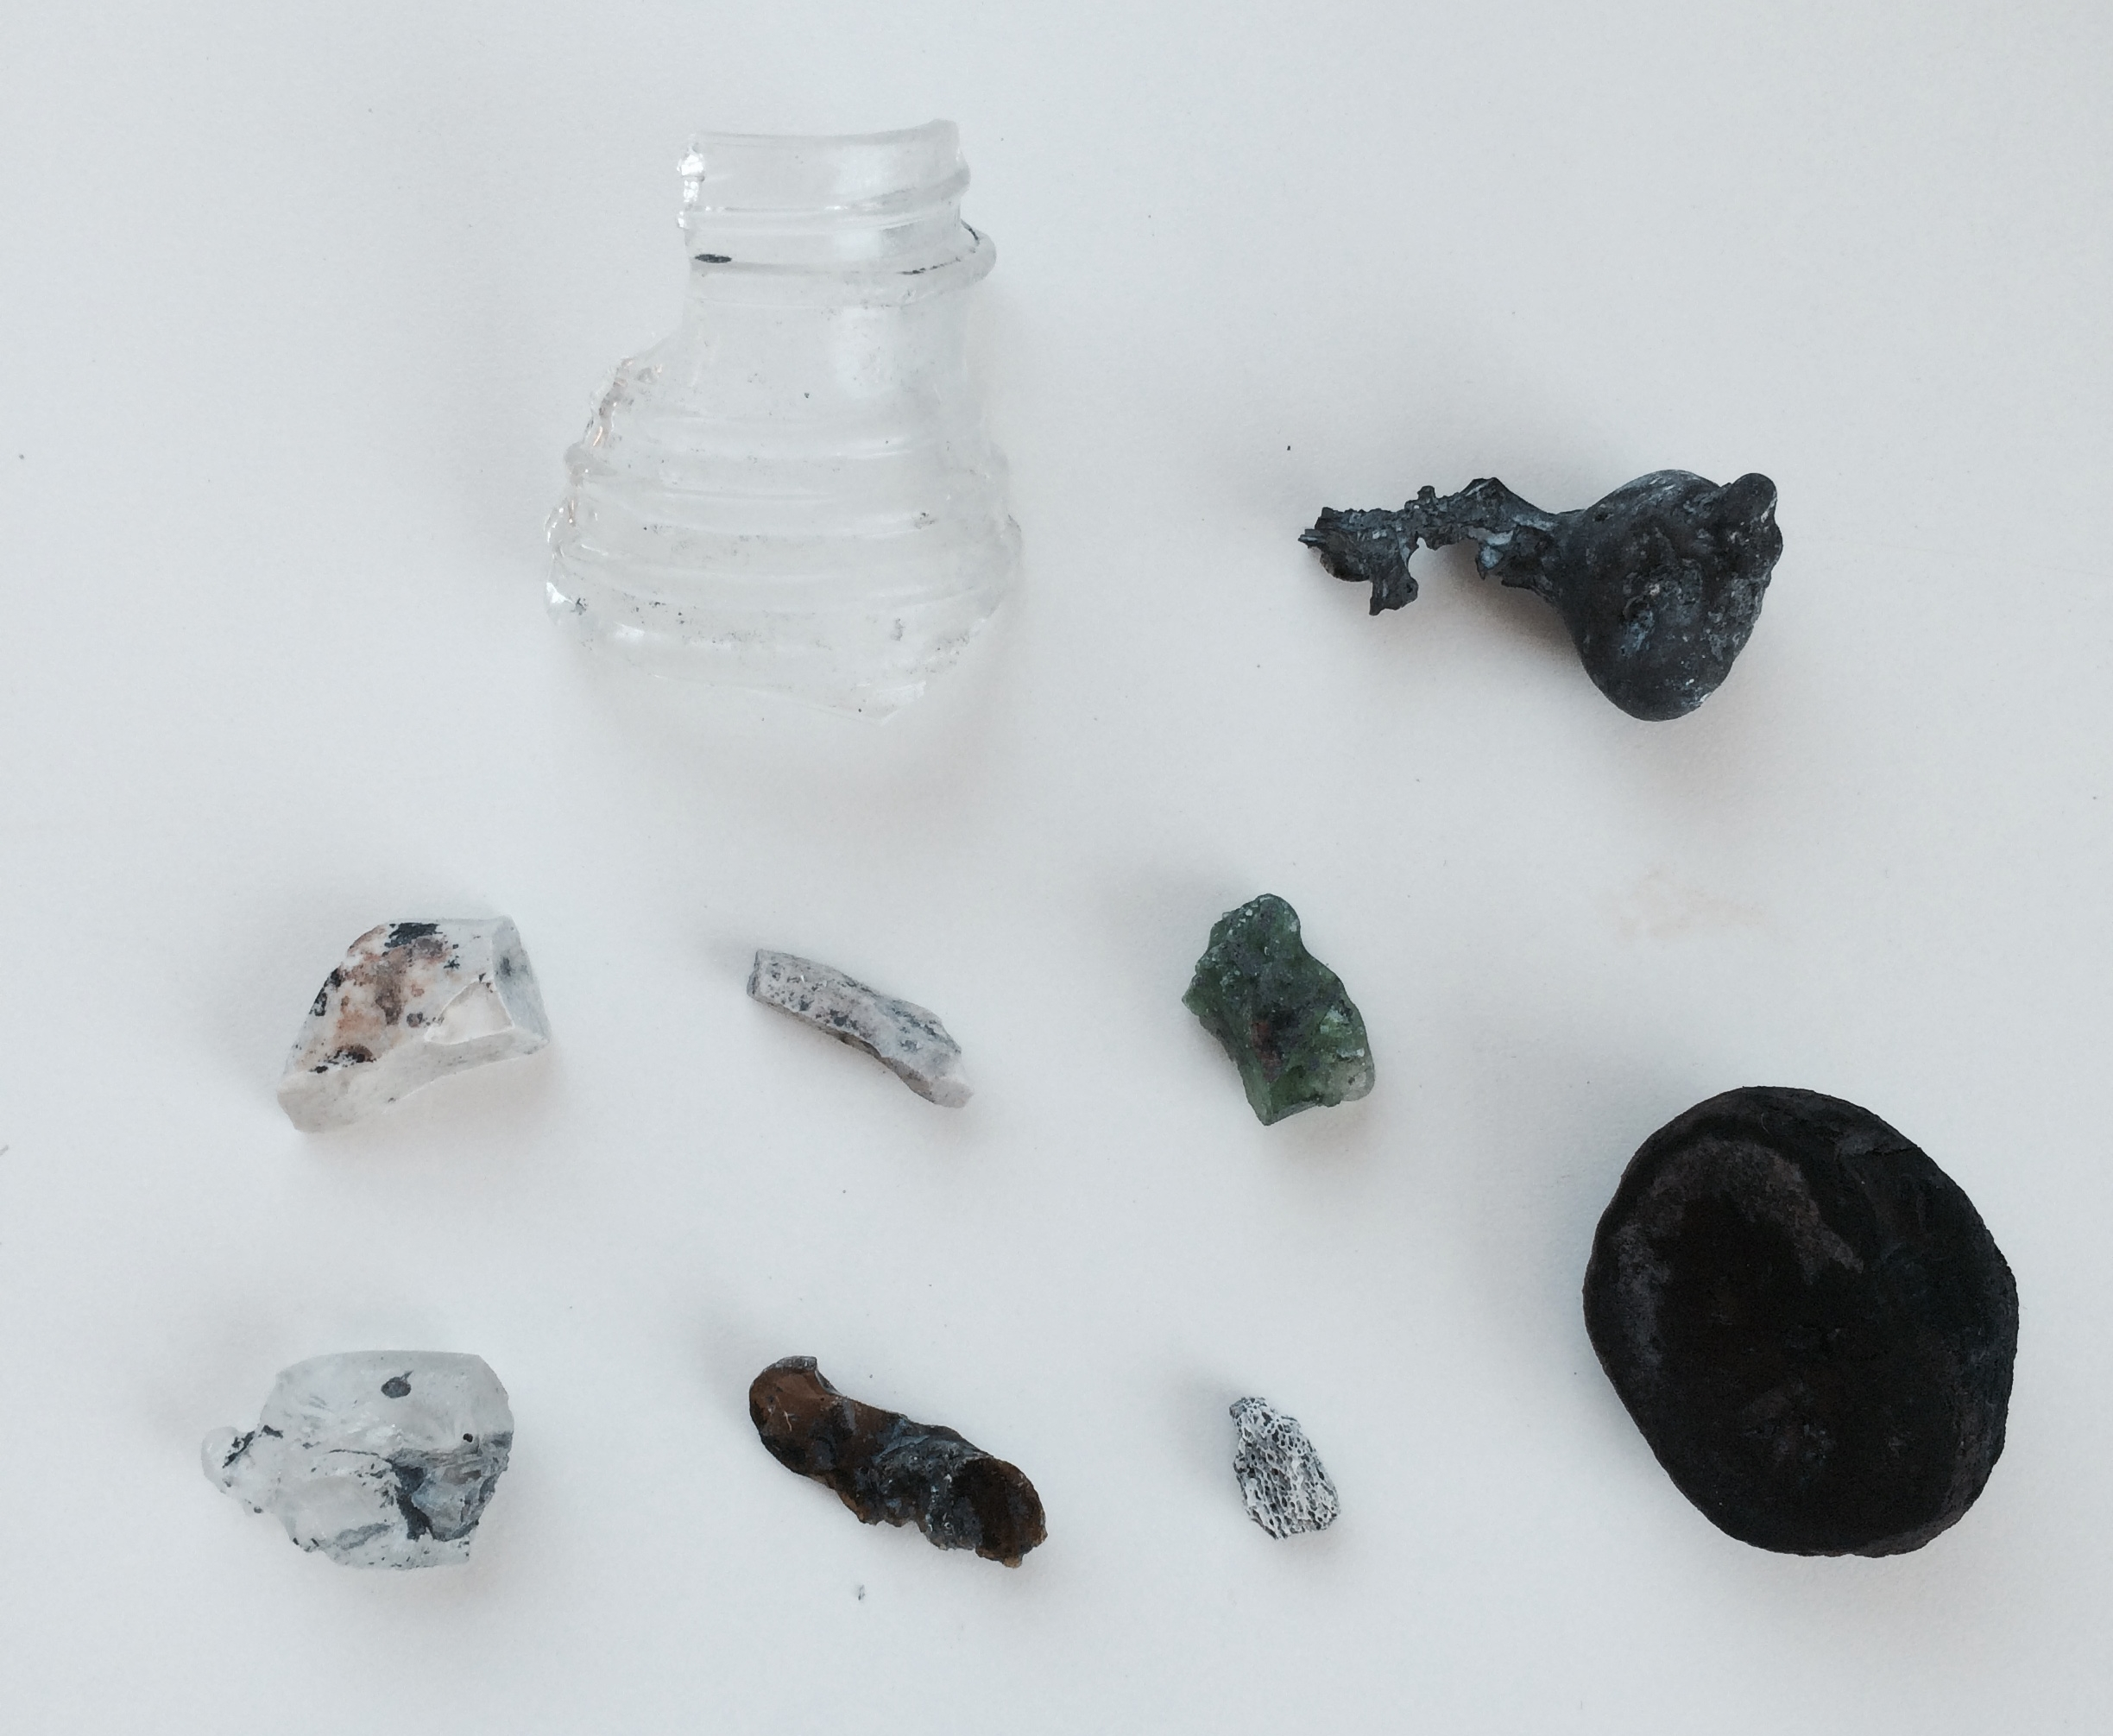 Above: objects collected from ash